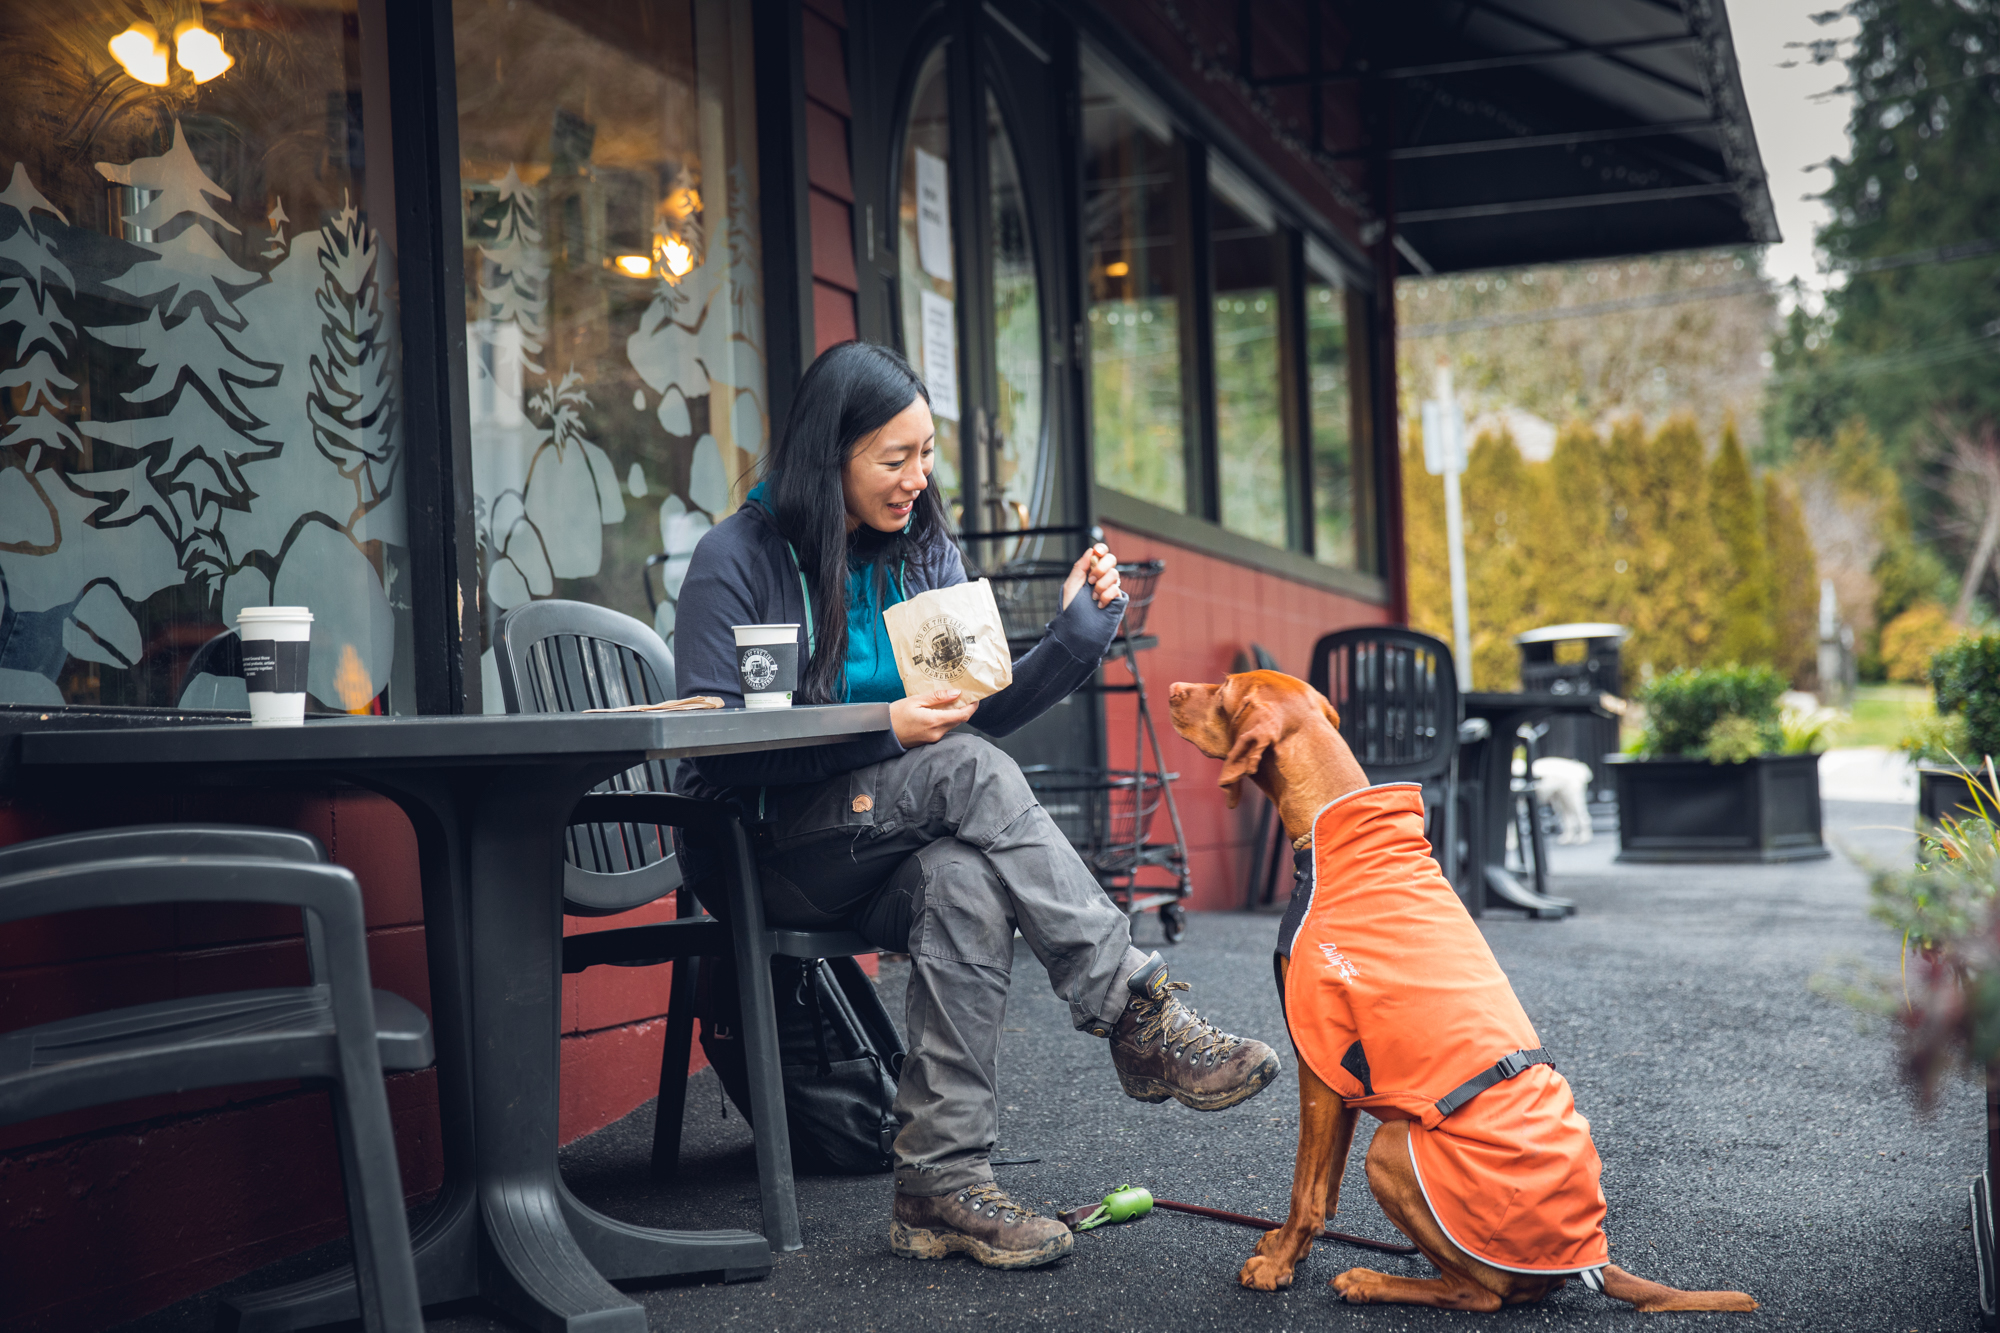 Woman and dog at cafe